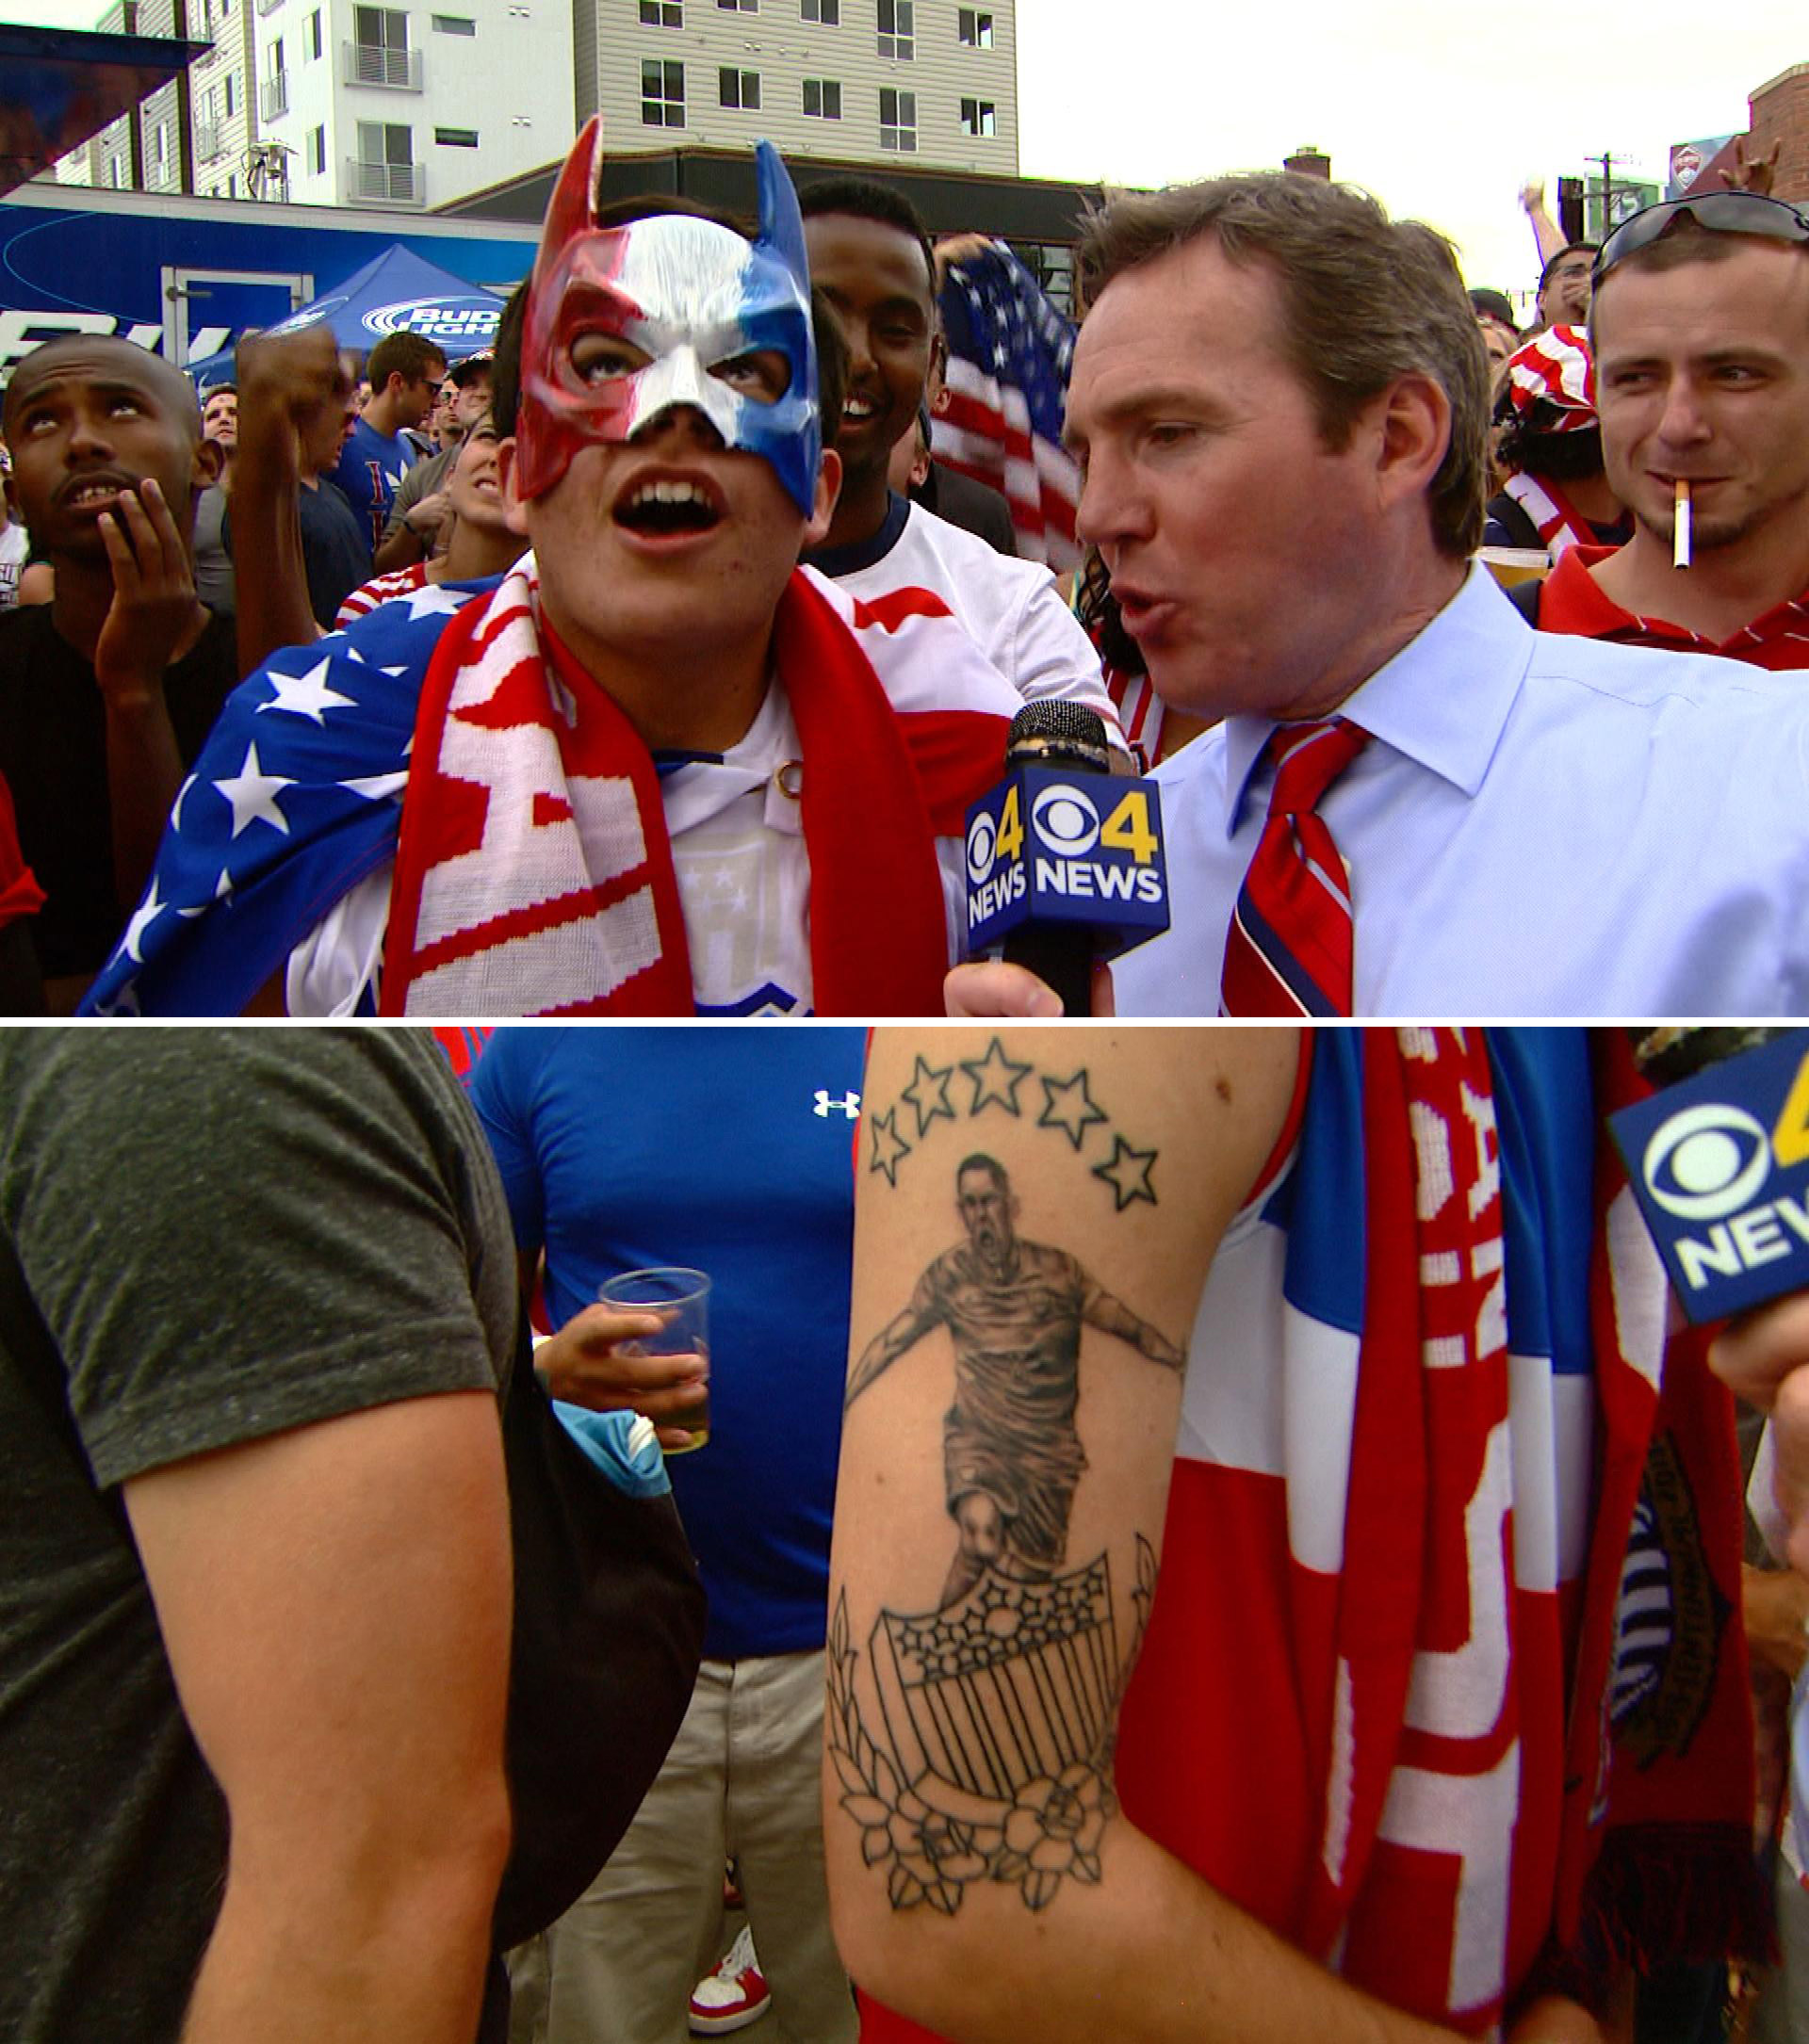 World Cup fans show their pride. (credit: CBS)